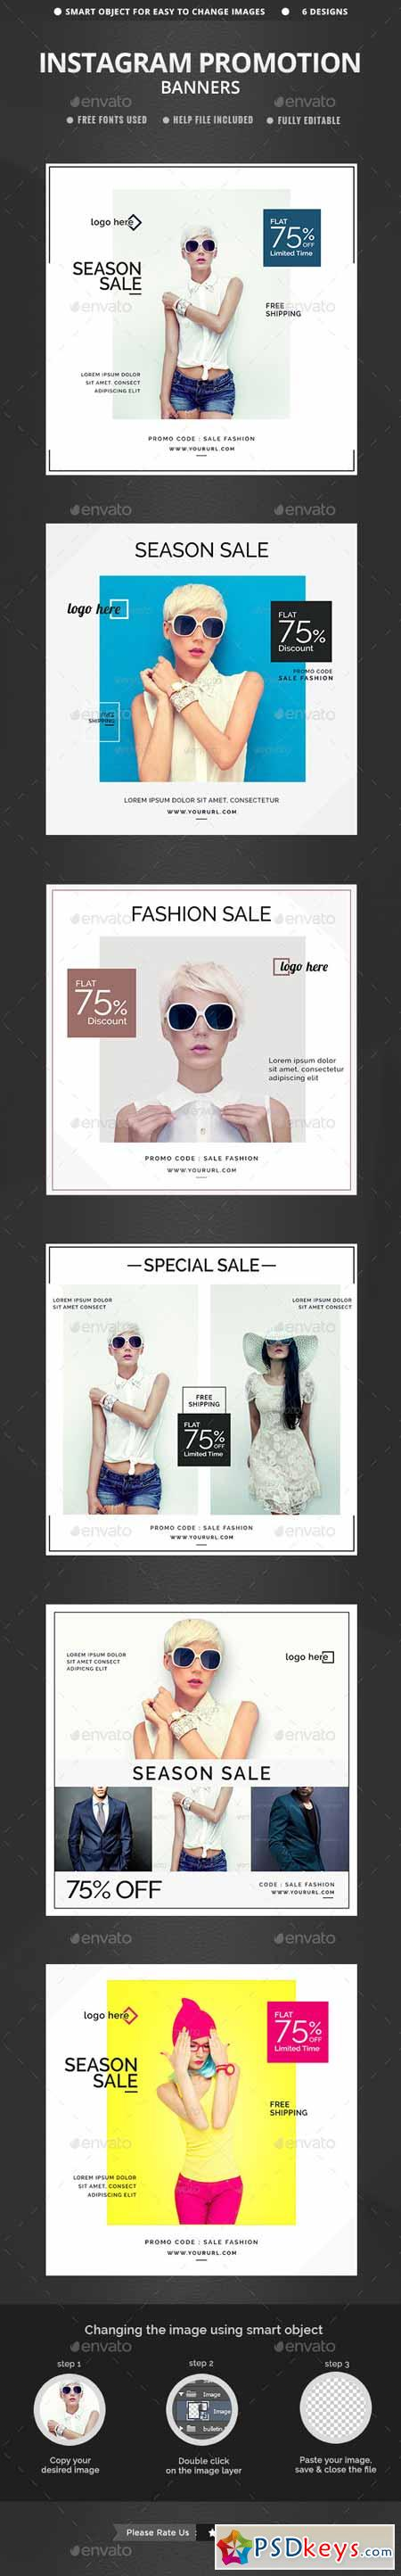 Sales Instagram Banners - 6 Templates 12901326